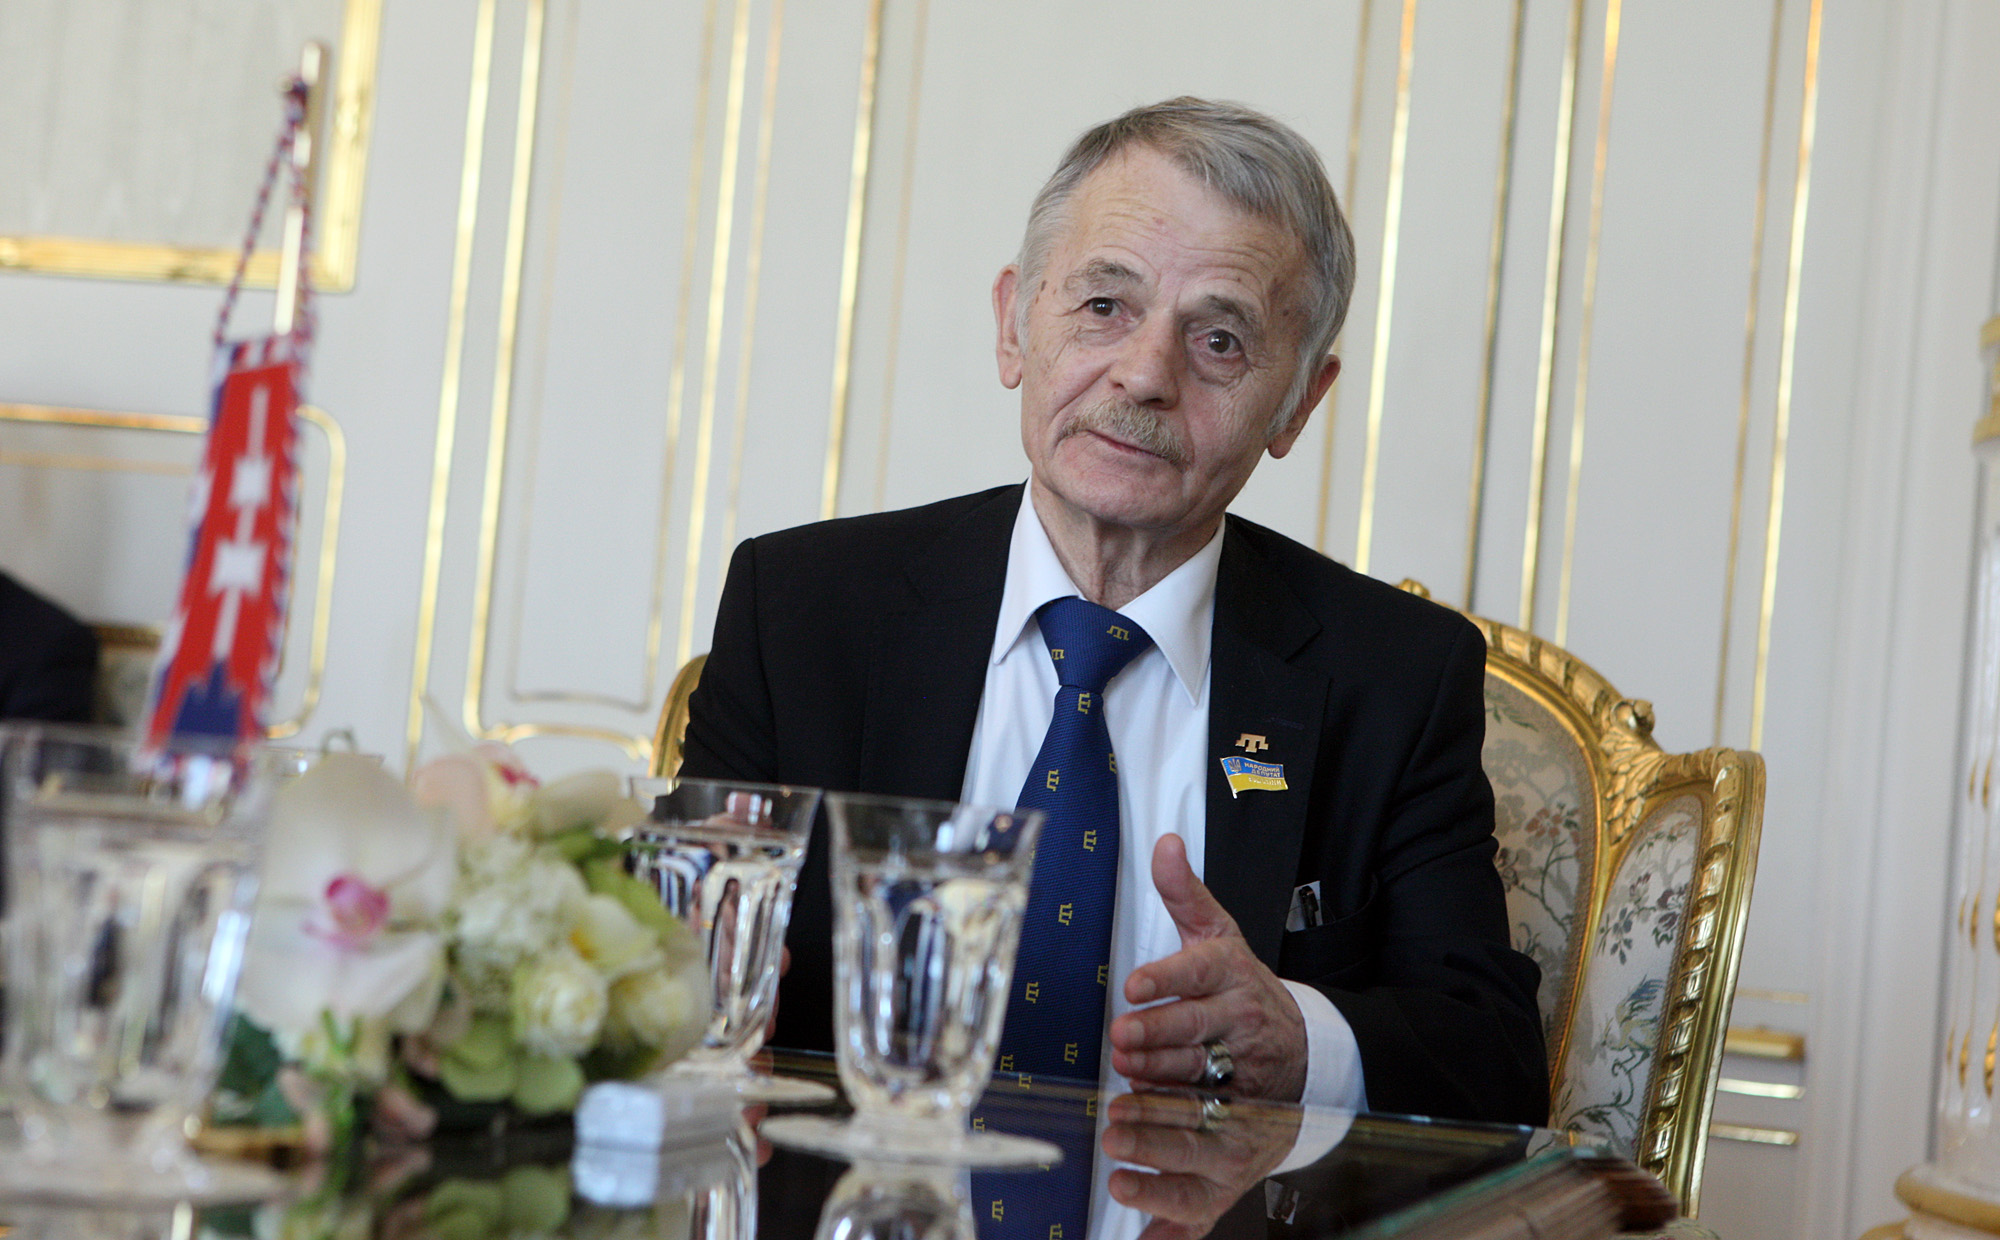 """Nothing justifies bloodshed,""Mustafa Dzhemilev at PDCS conference"